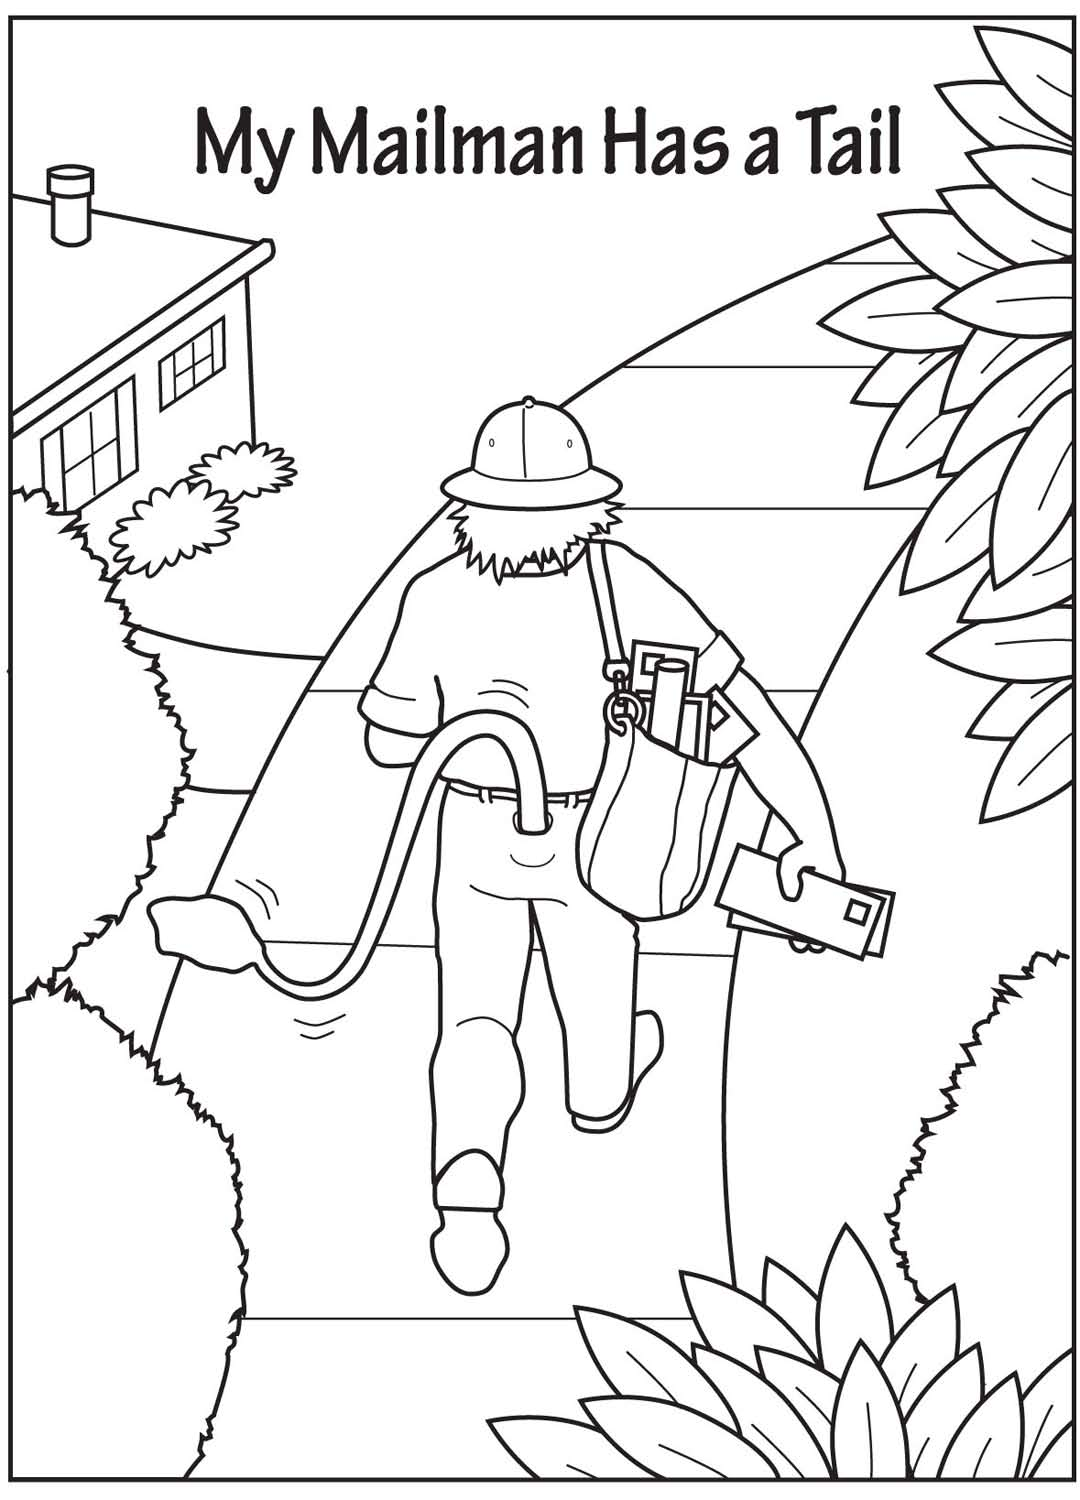 mailman coloring pages for toddlers - photo#16